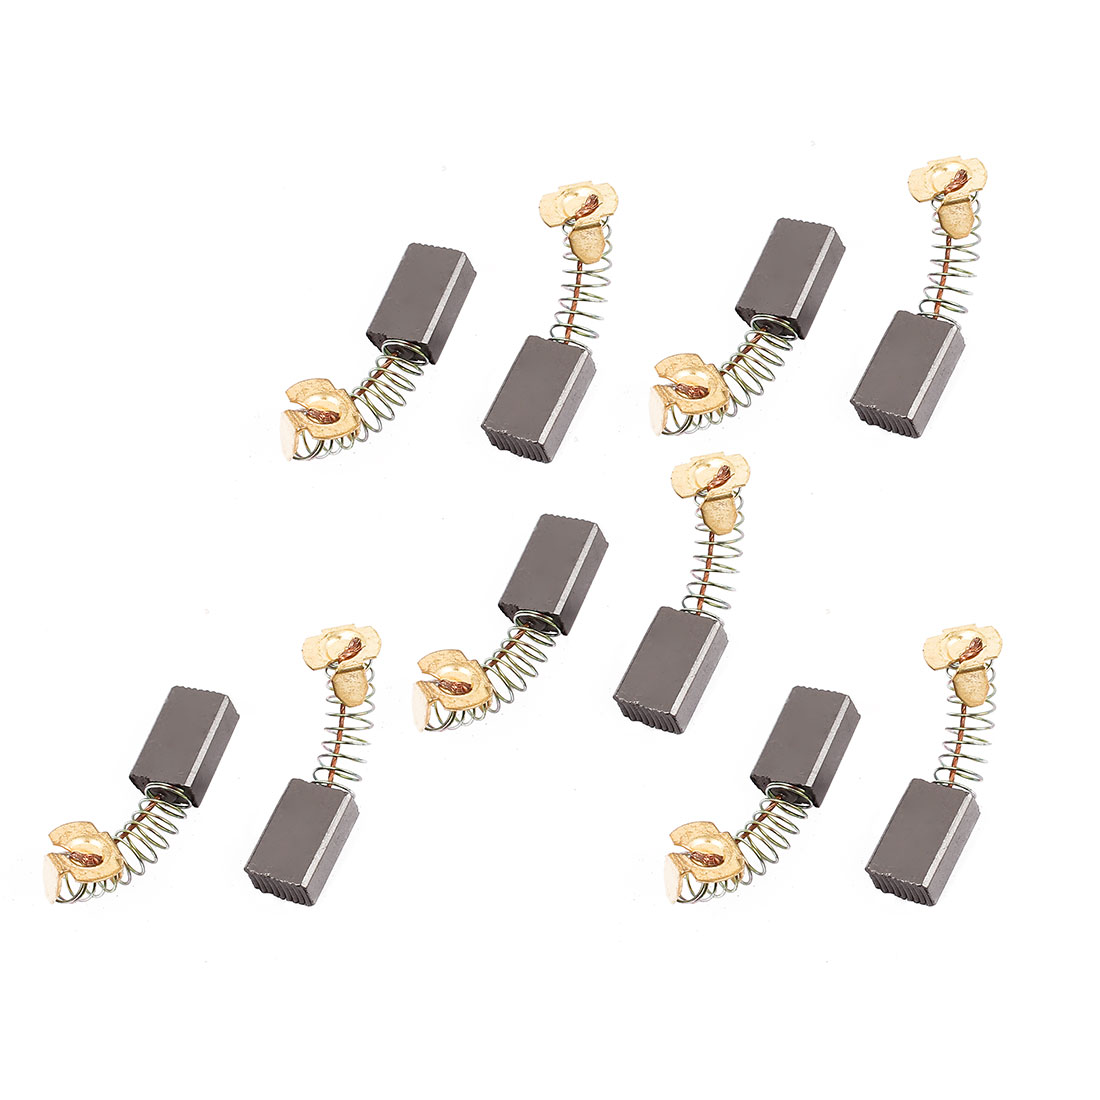 5 Pairs 16x10x6mm Carbon Brushes Power Tool for Electric Hammer Drill Motor